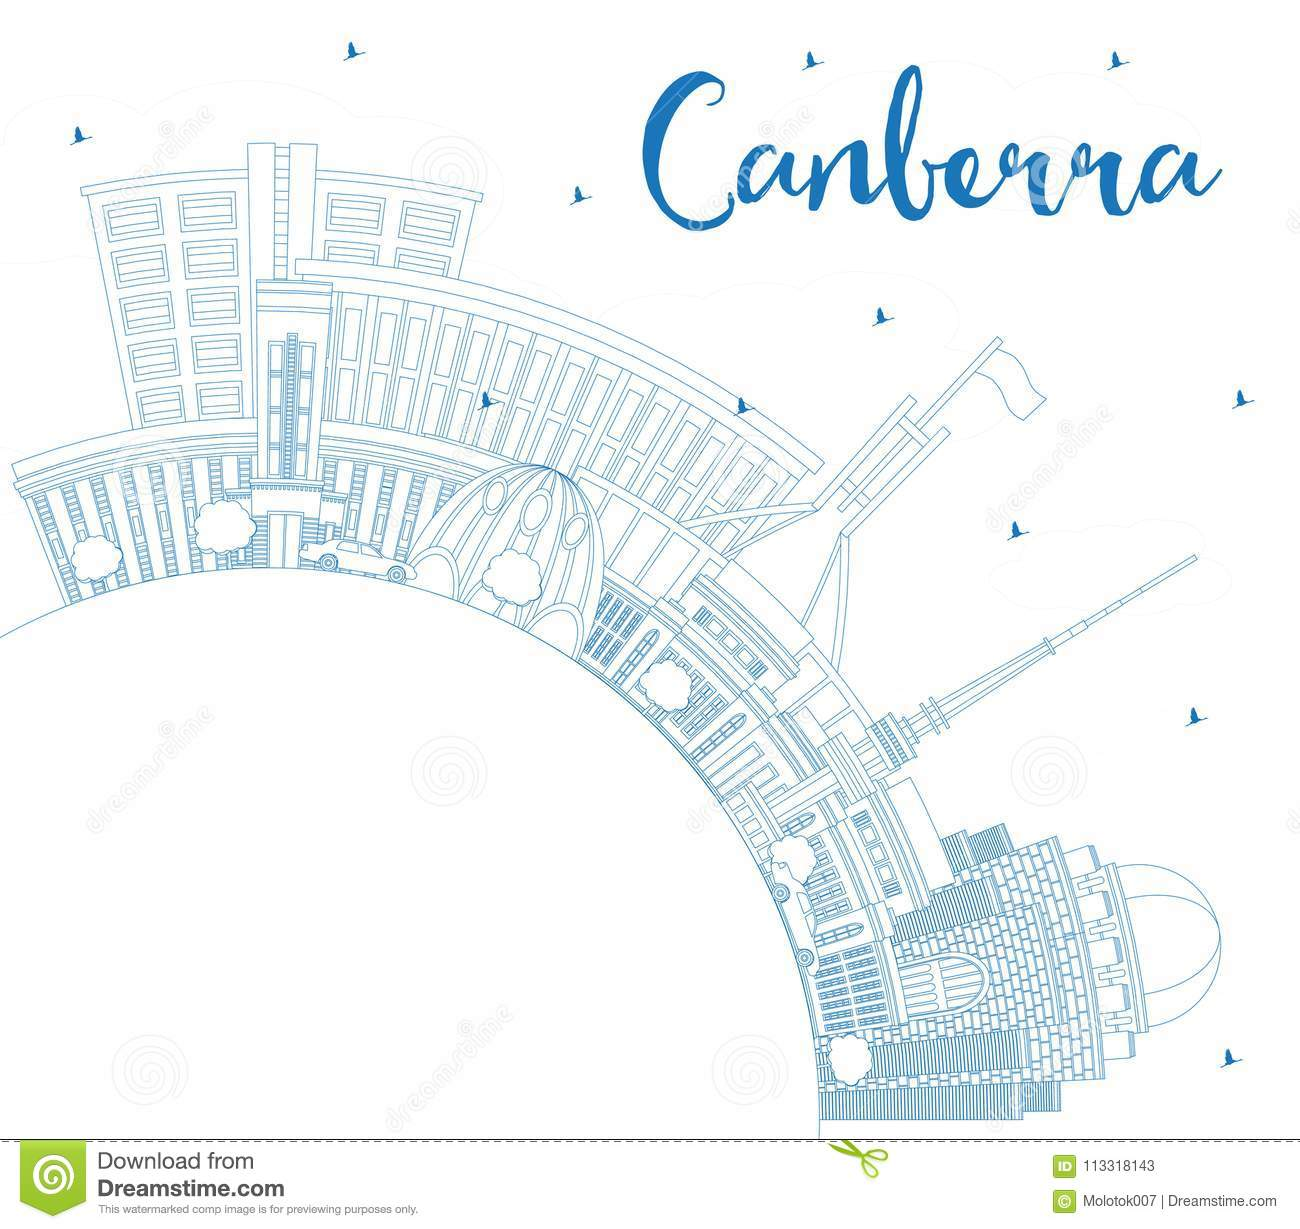 Outline Canberra Australia City Skyline with Blue Buildings and